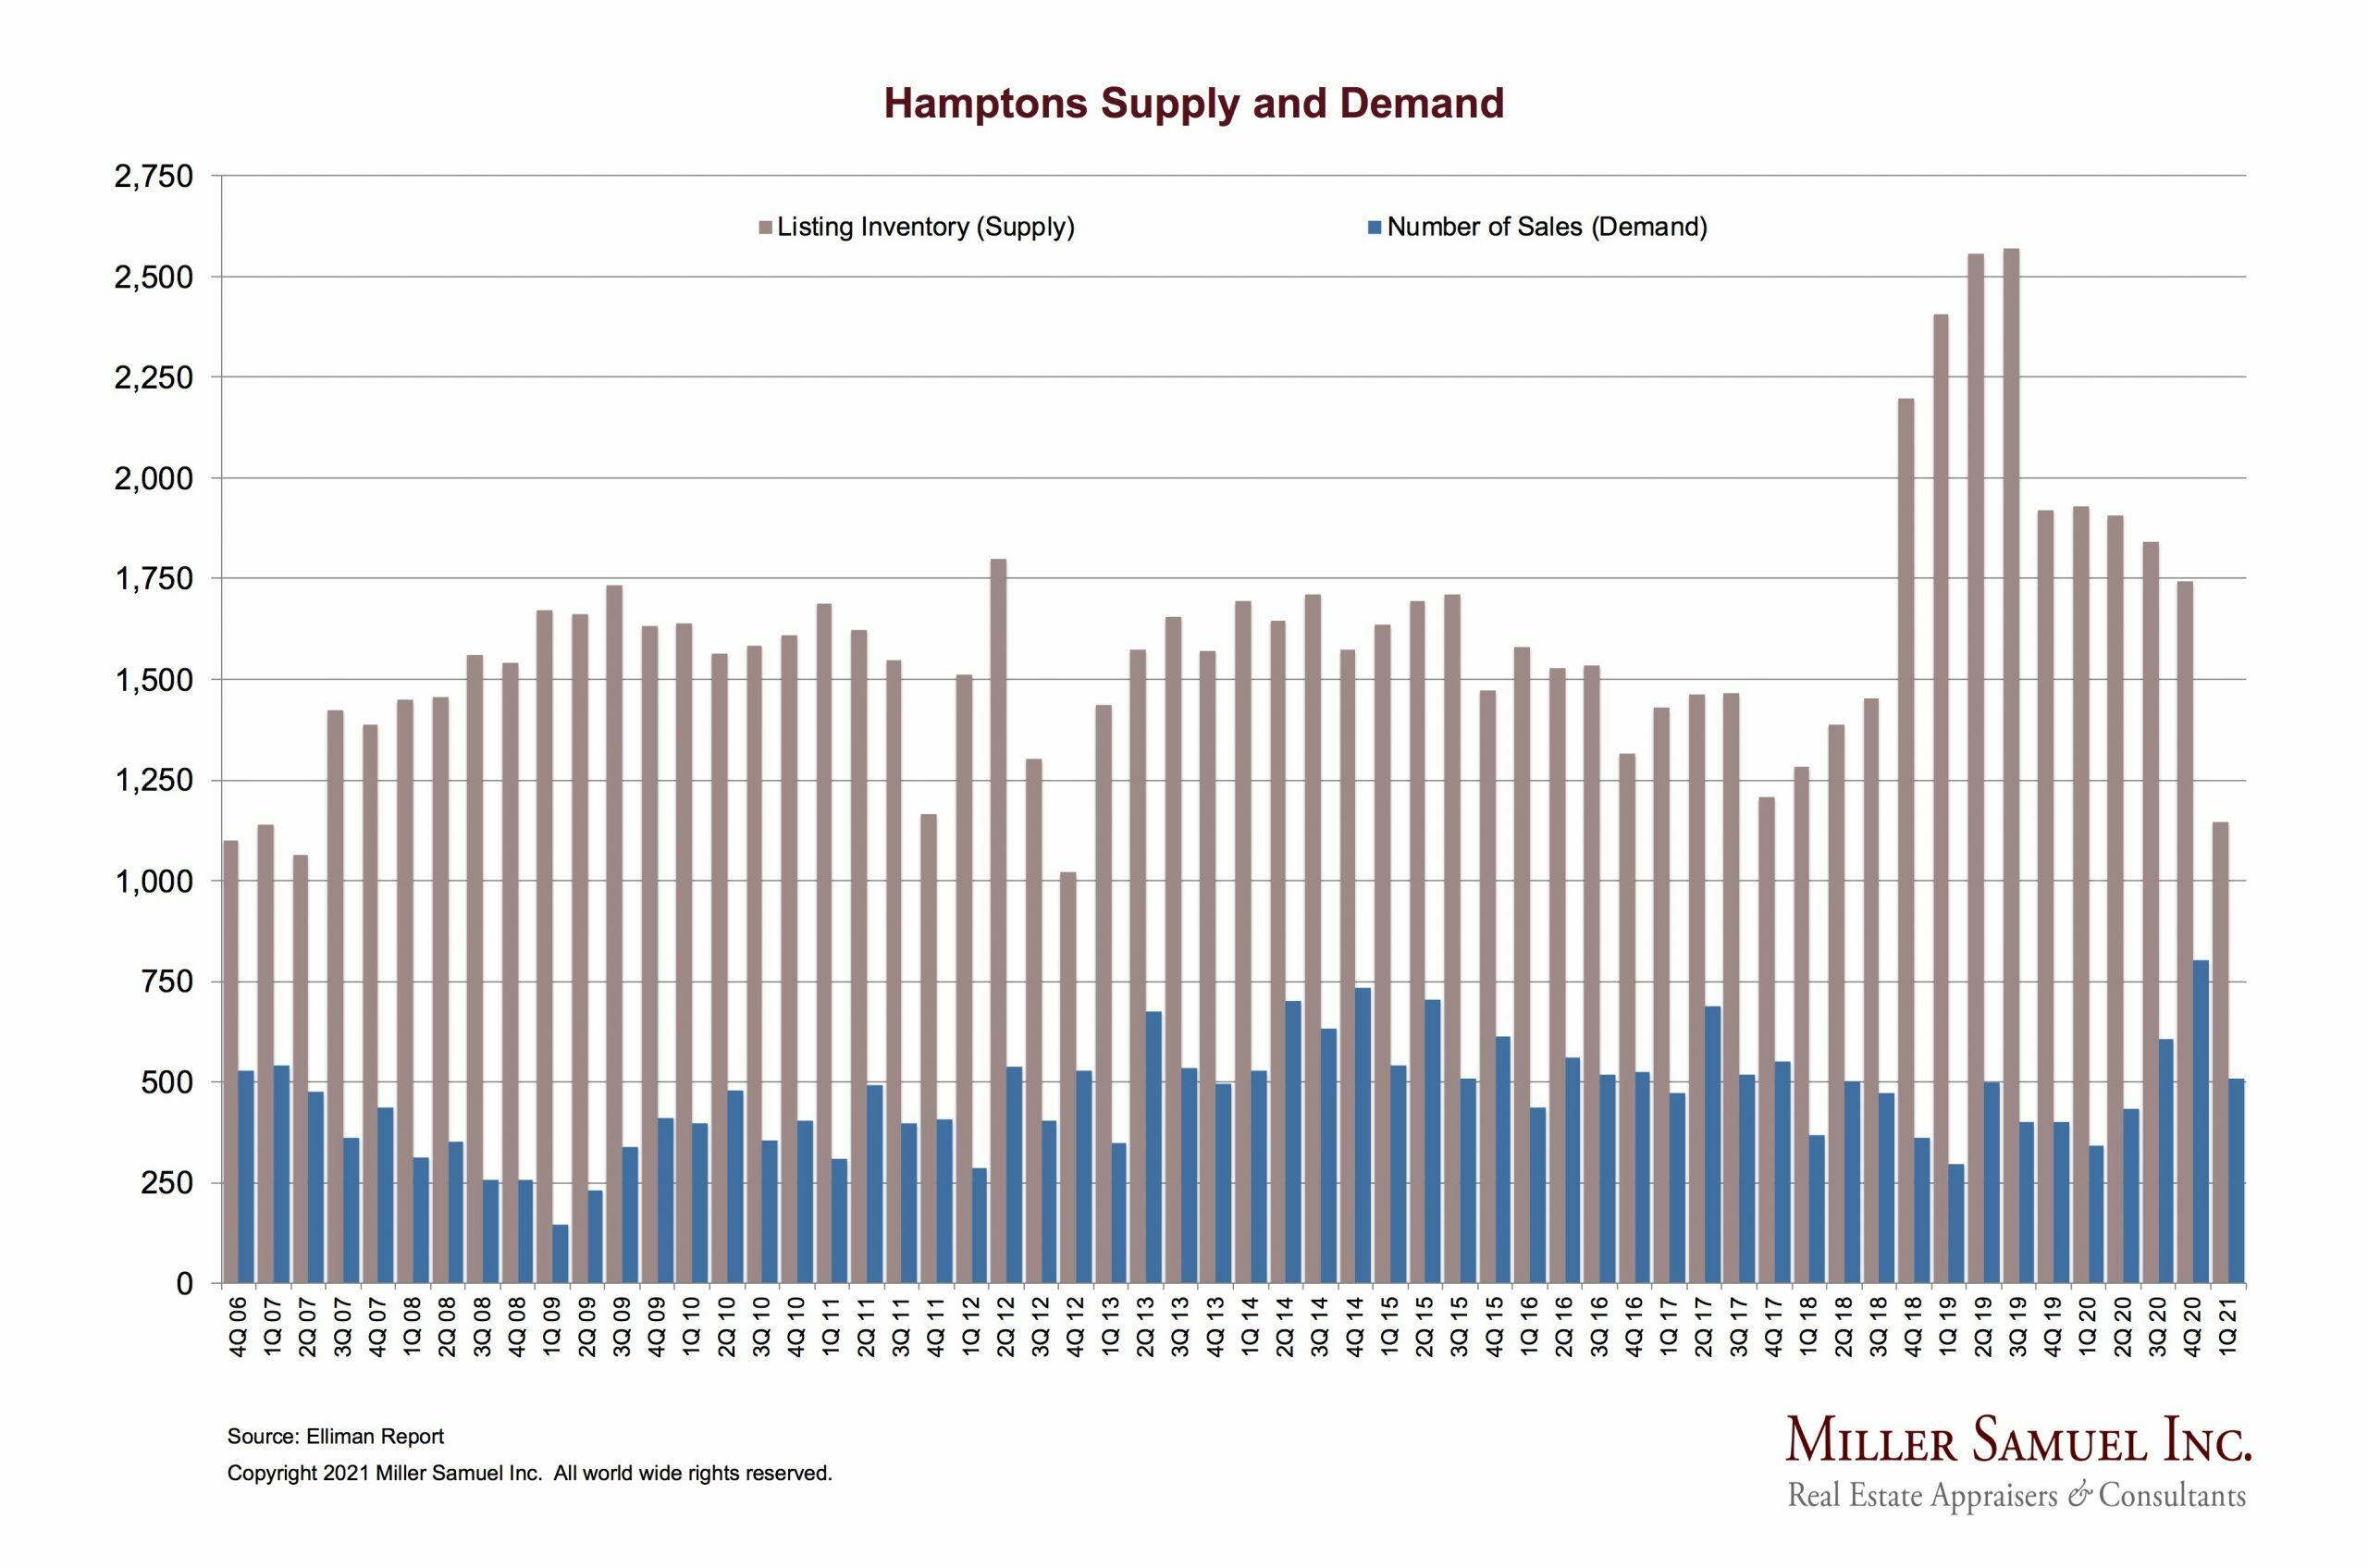 The Hamptons real estate market had the most first-quarter sales since 2015 while inventory hit a low mark, according to Miller Samuel Inc., the real estate appraisal firm that prepares The Elliman Report.